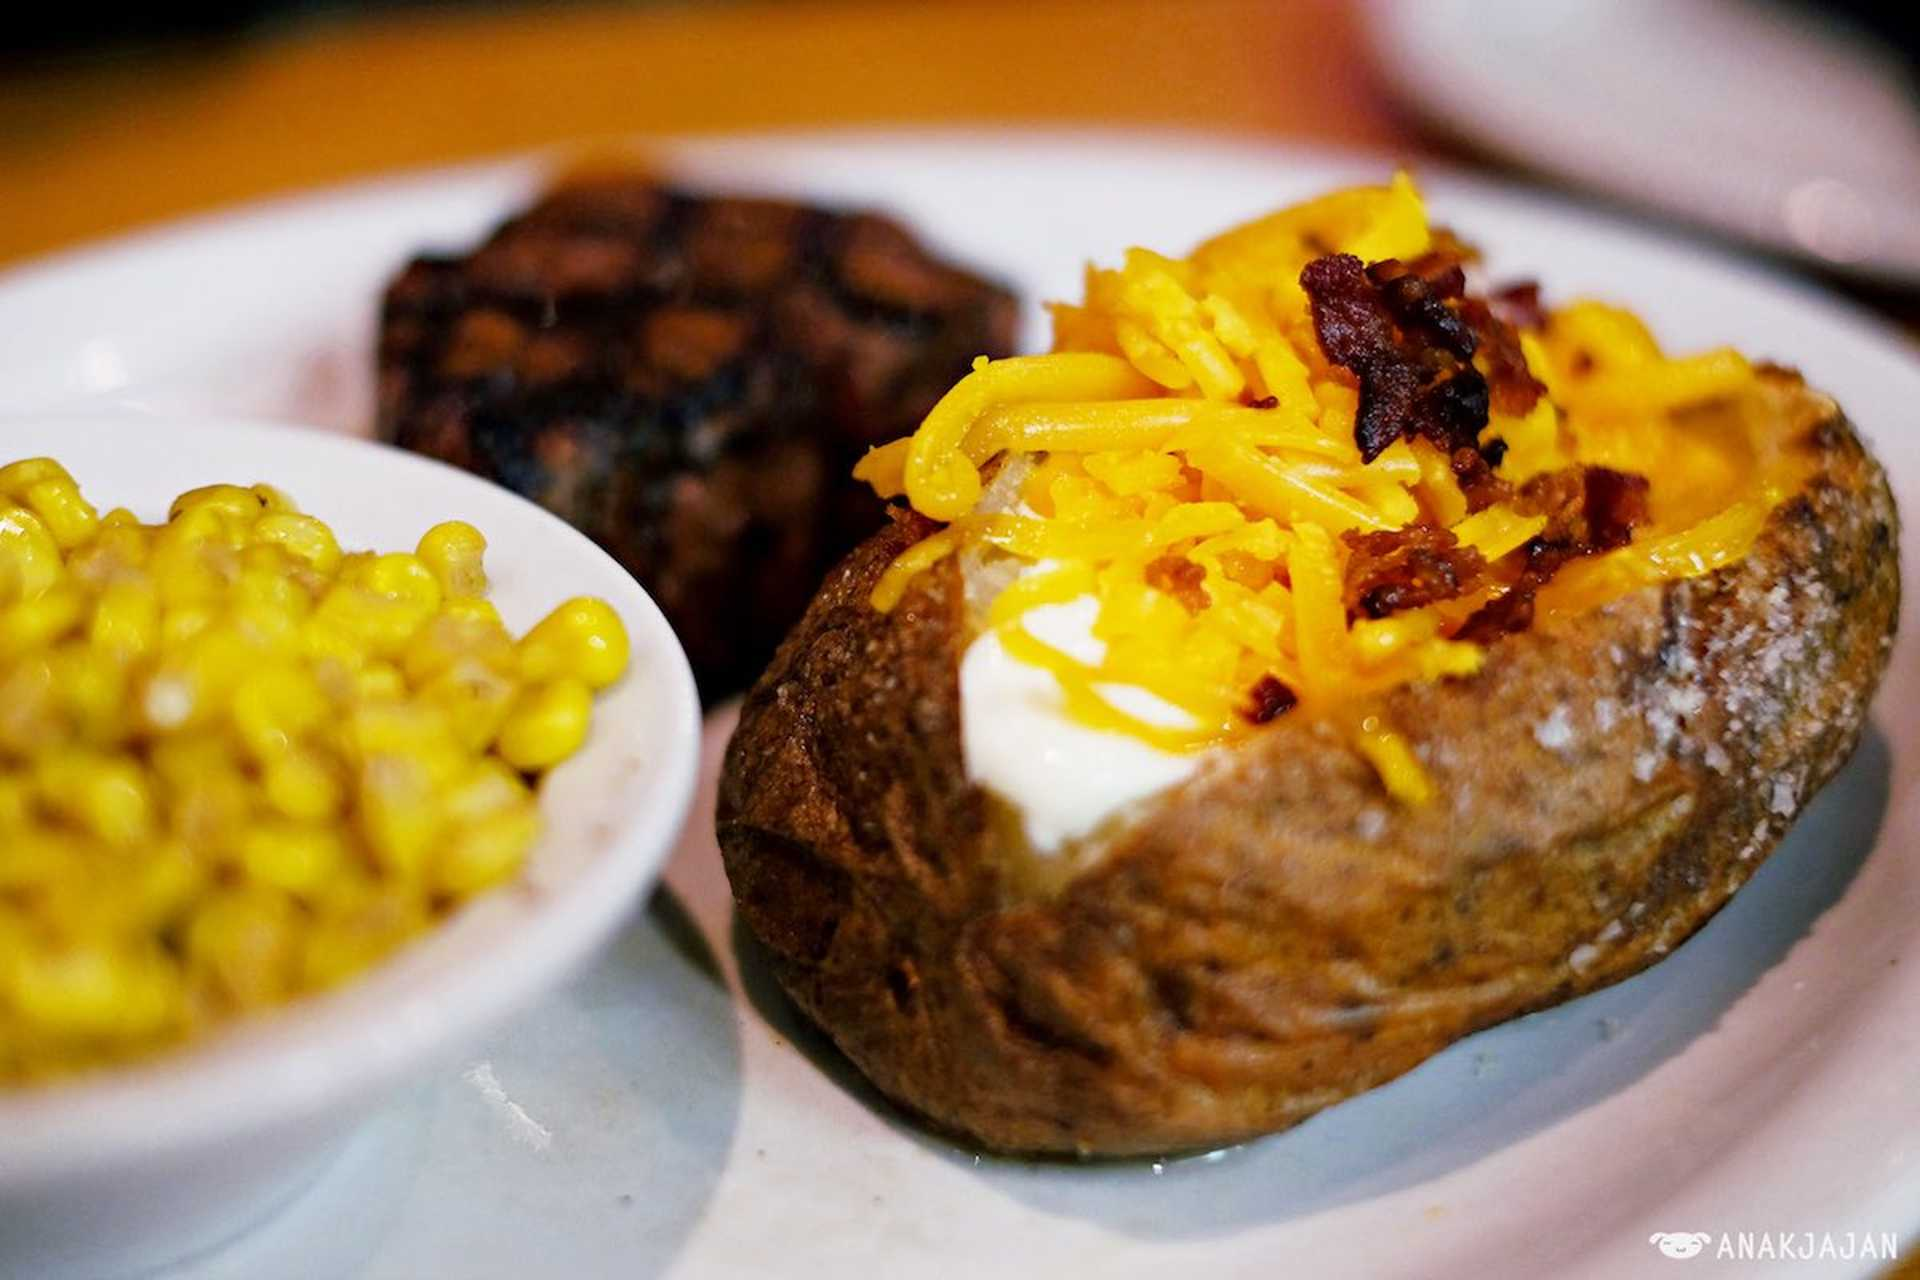 10 - Texas Roadhouse baked potato and buttered corn